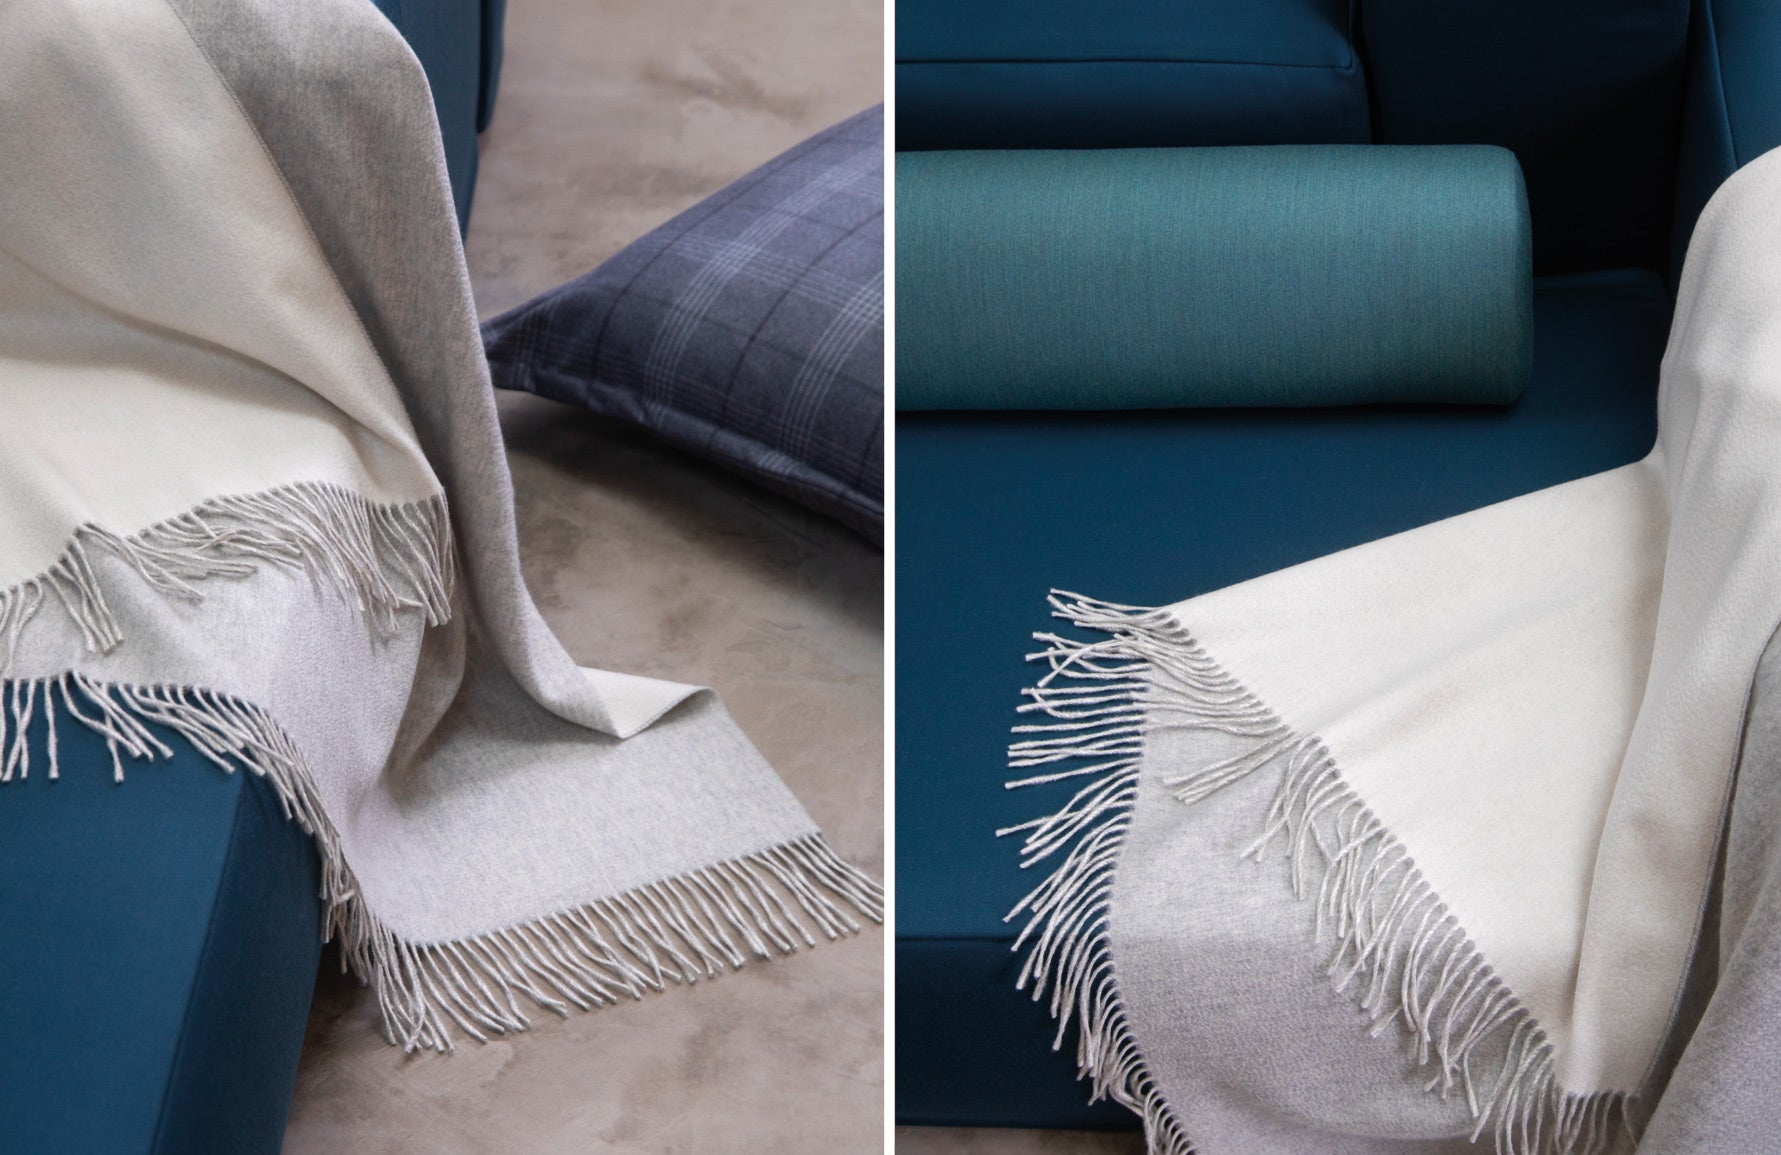 Cashmere Reversible Throw - 9 Best Luxury Throws & Blankets to Buy for your Home - Style Guide - LuxDeco.com